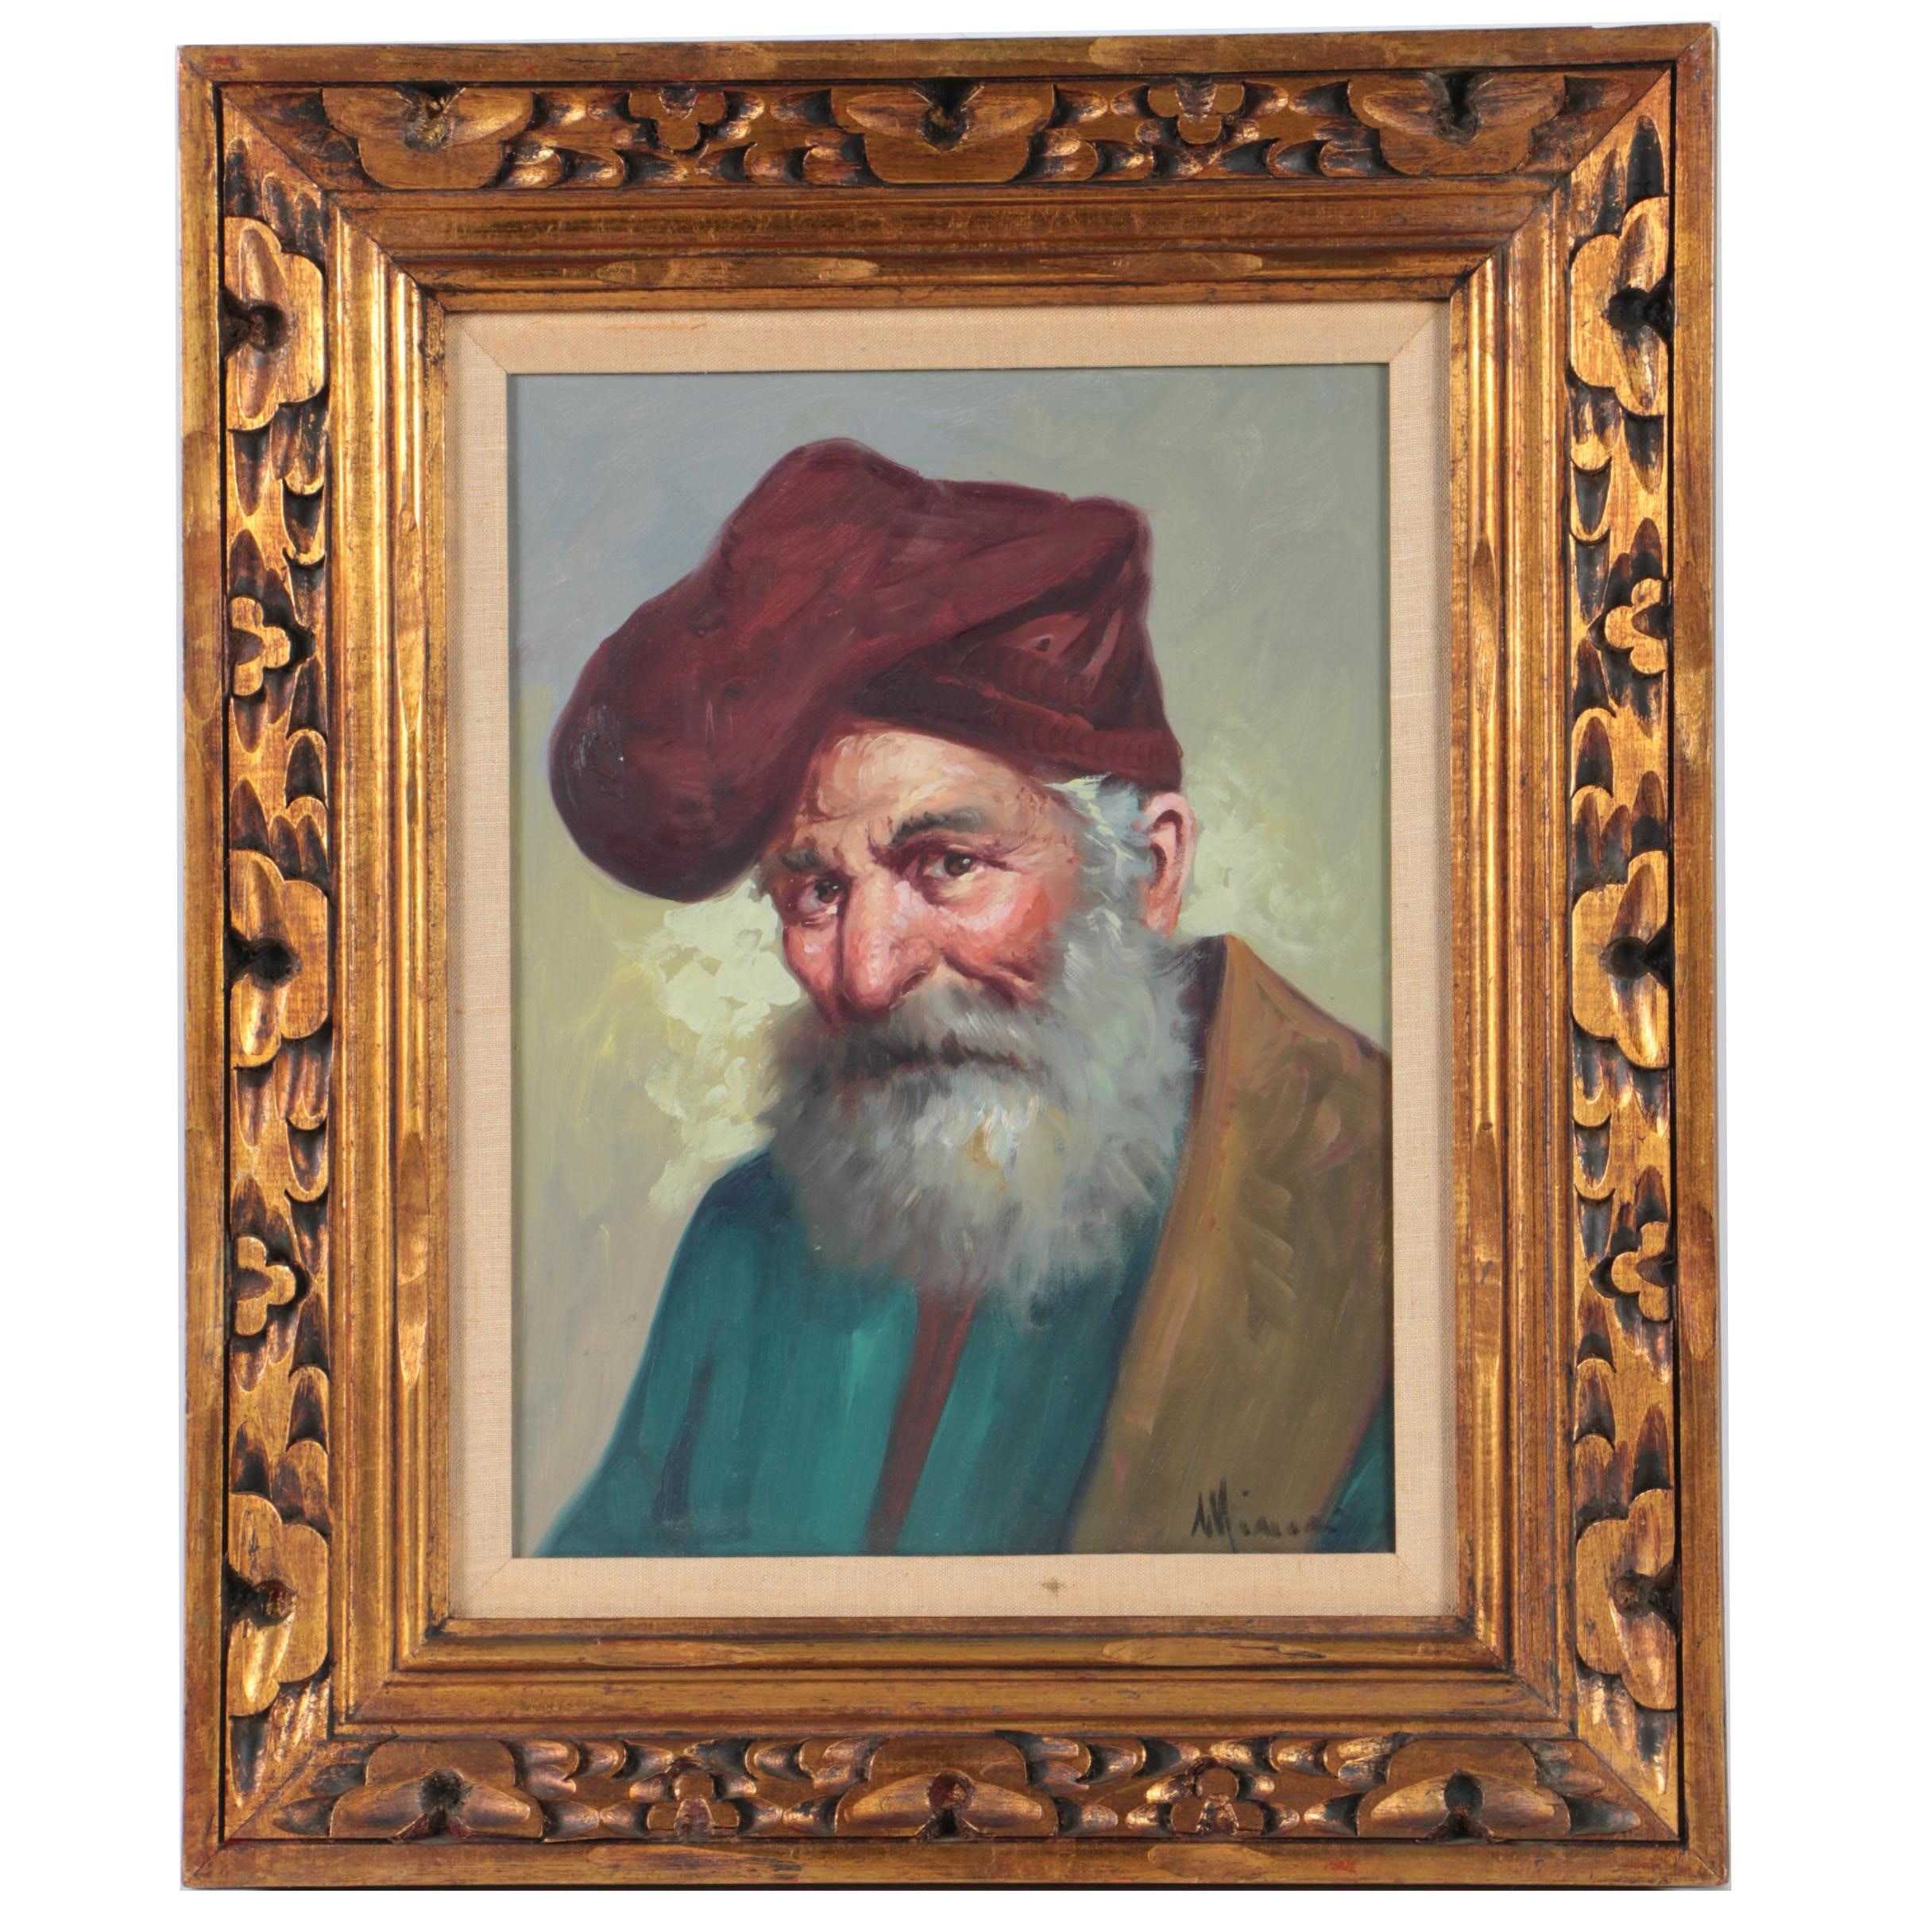 Minori Oil Painting on Canvas of Portrait of Bearded Figure